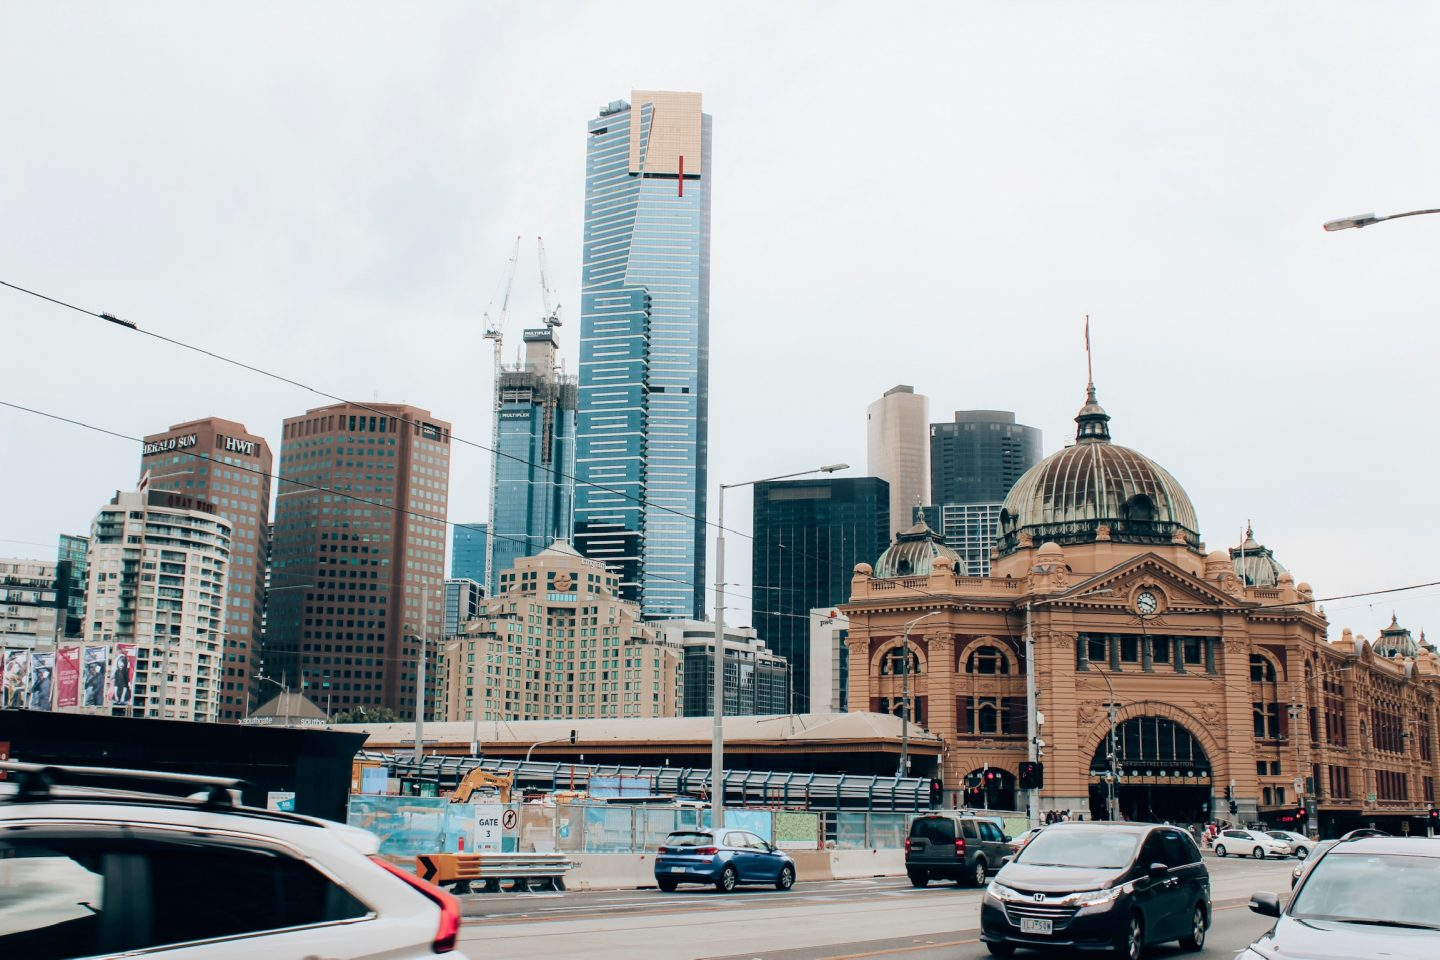 Flinders Street Station and the downtown Melbourne skyline.